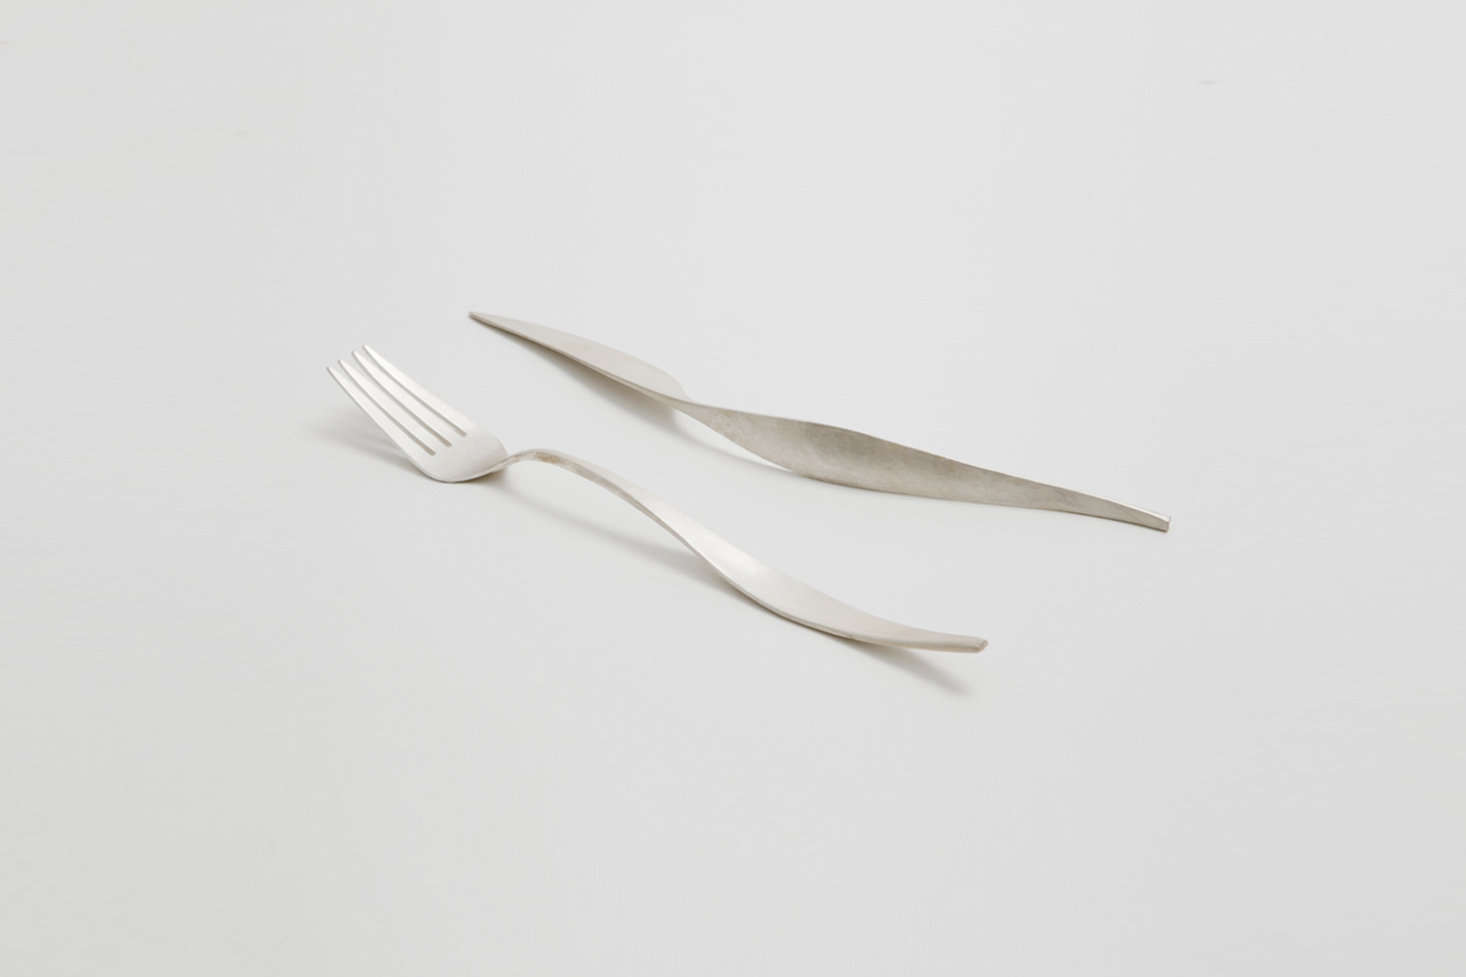 TheField Forged Flatware is hand-hammered from solid silver by designer Farrah Sit. For more, see Easy Pieces: New Artisan Flatware Designs.